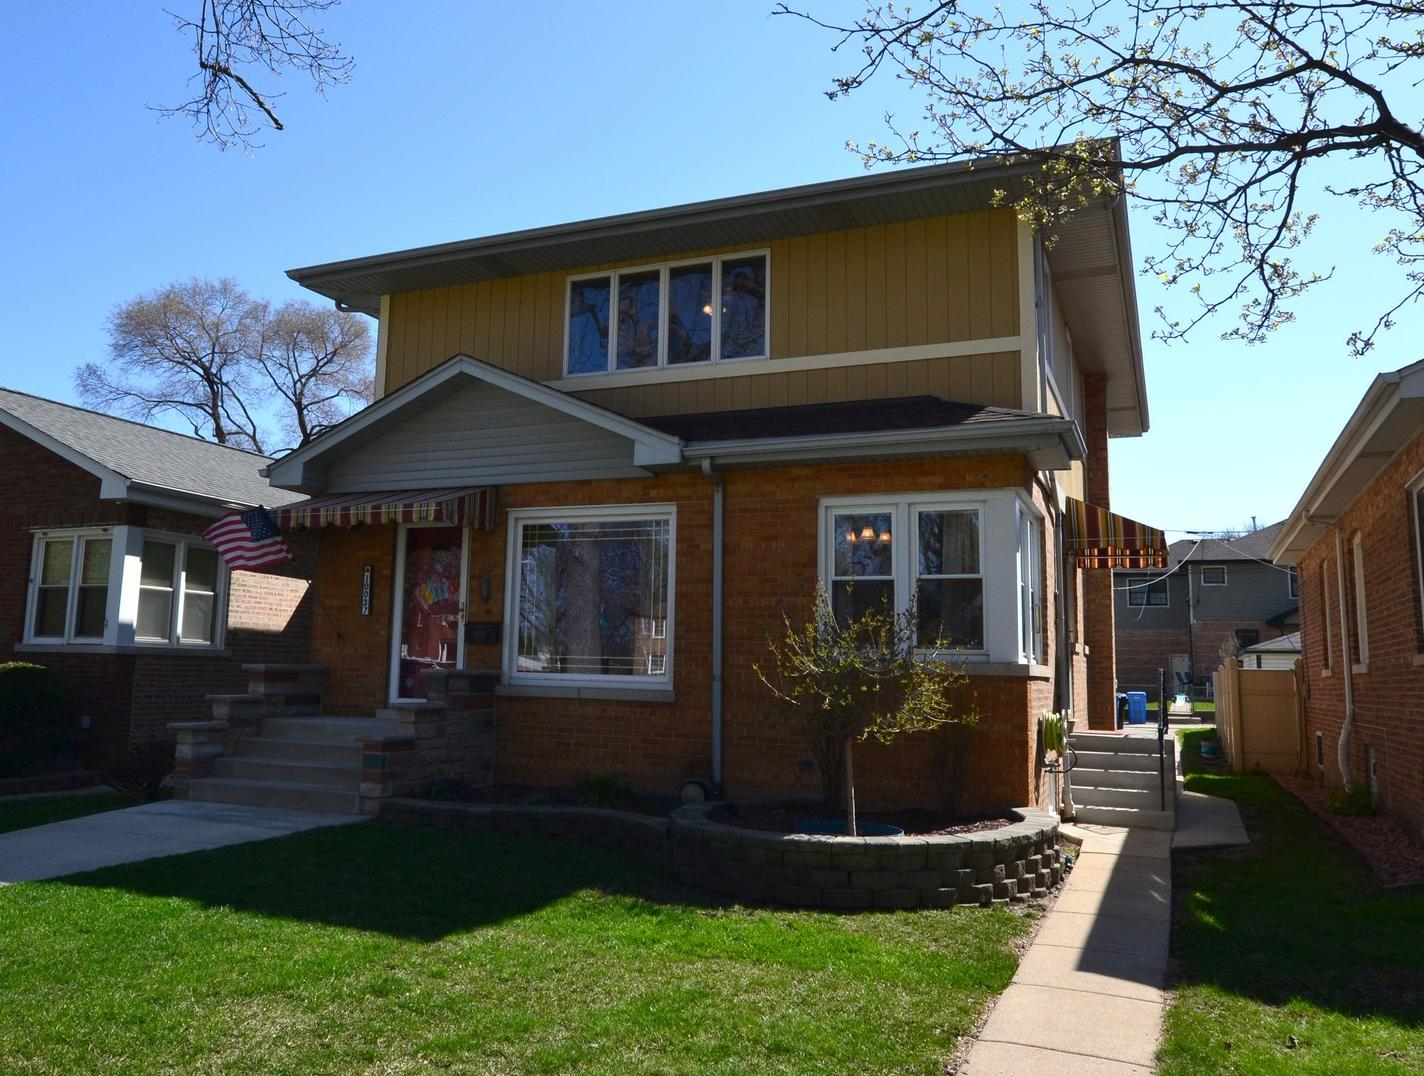 Photo of 10037 Maplewood Chicago IL 60655